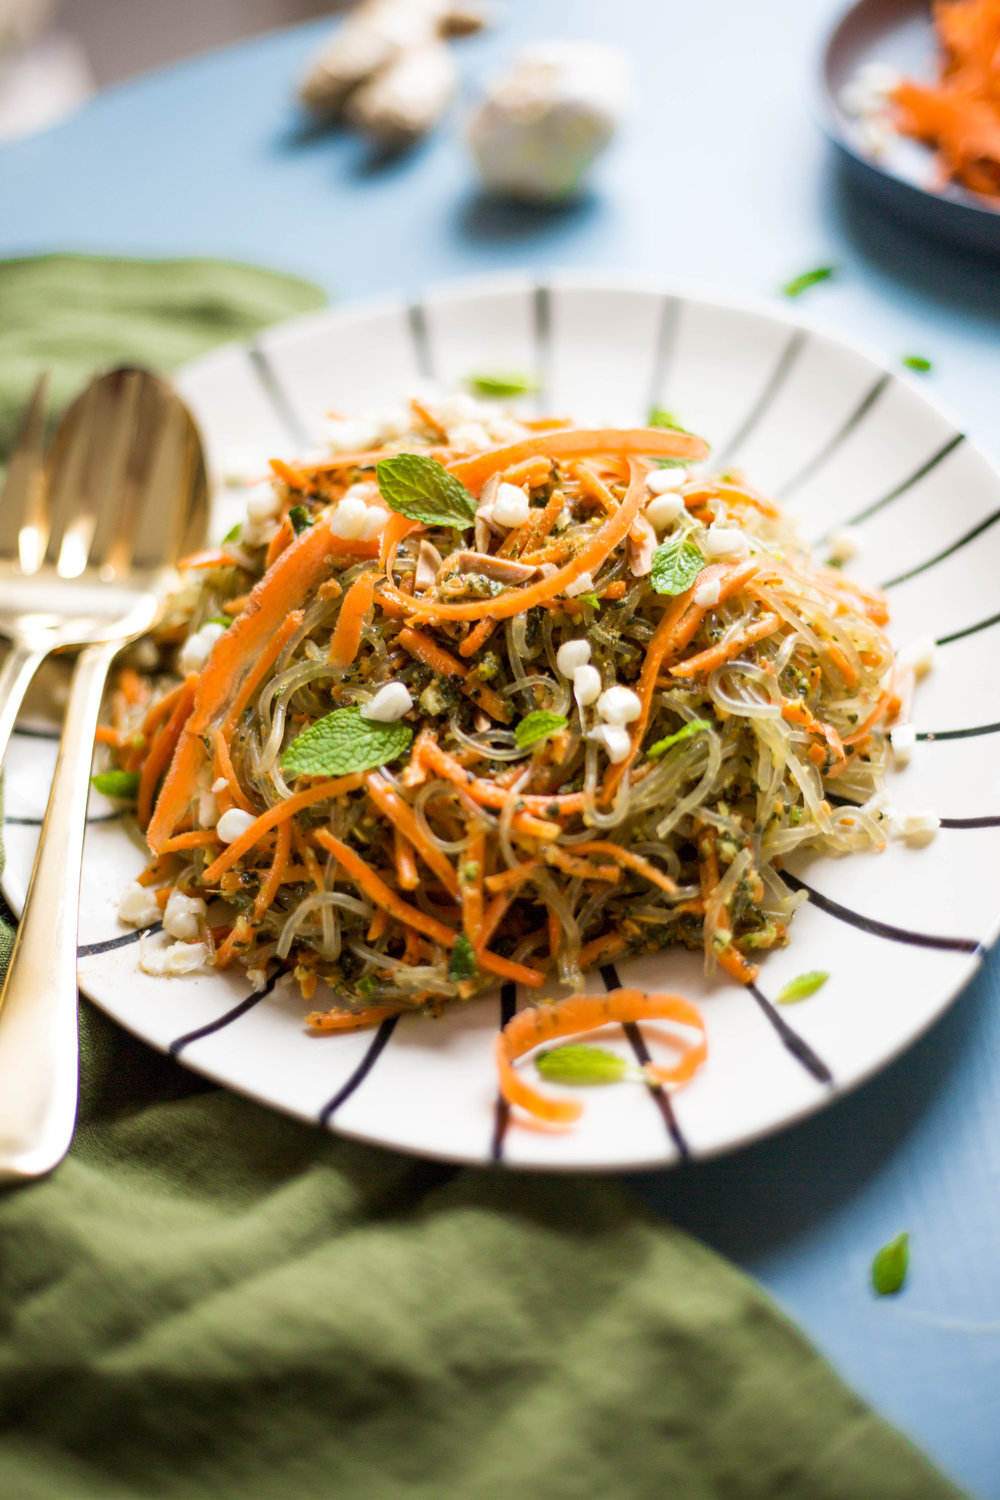 Mint & Ginger Pesto Over Kelp Noodles | #glutenfree #vegan #rawvegan @julinovotny